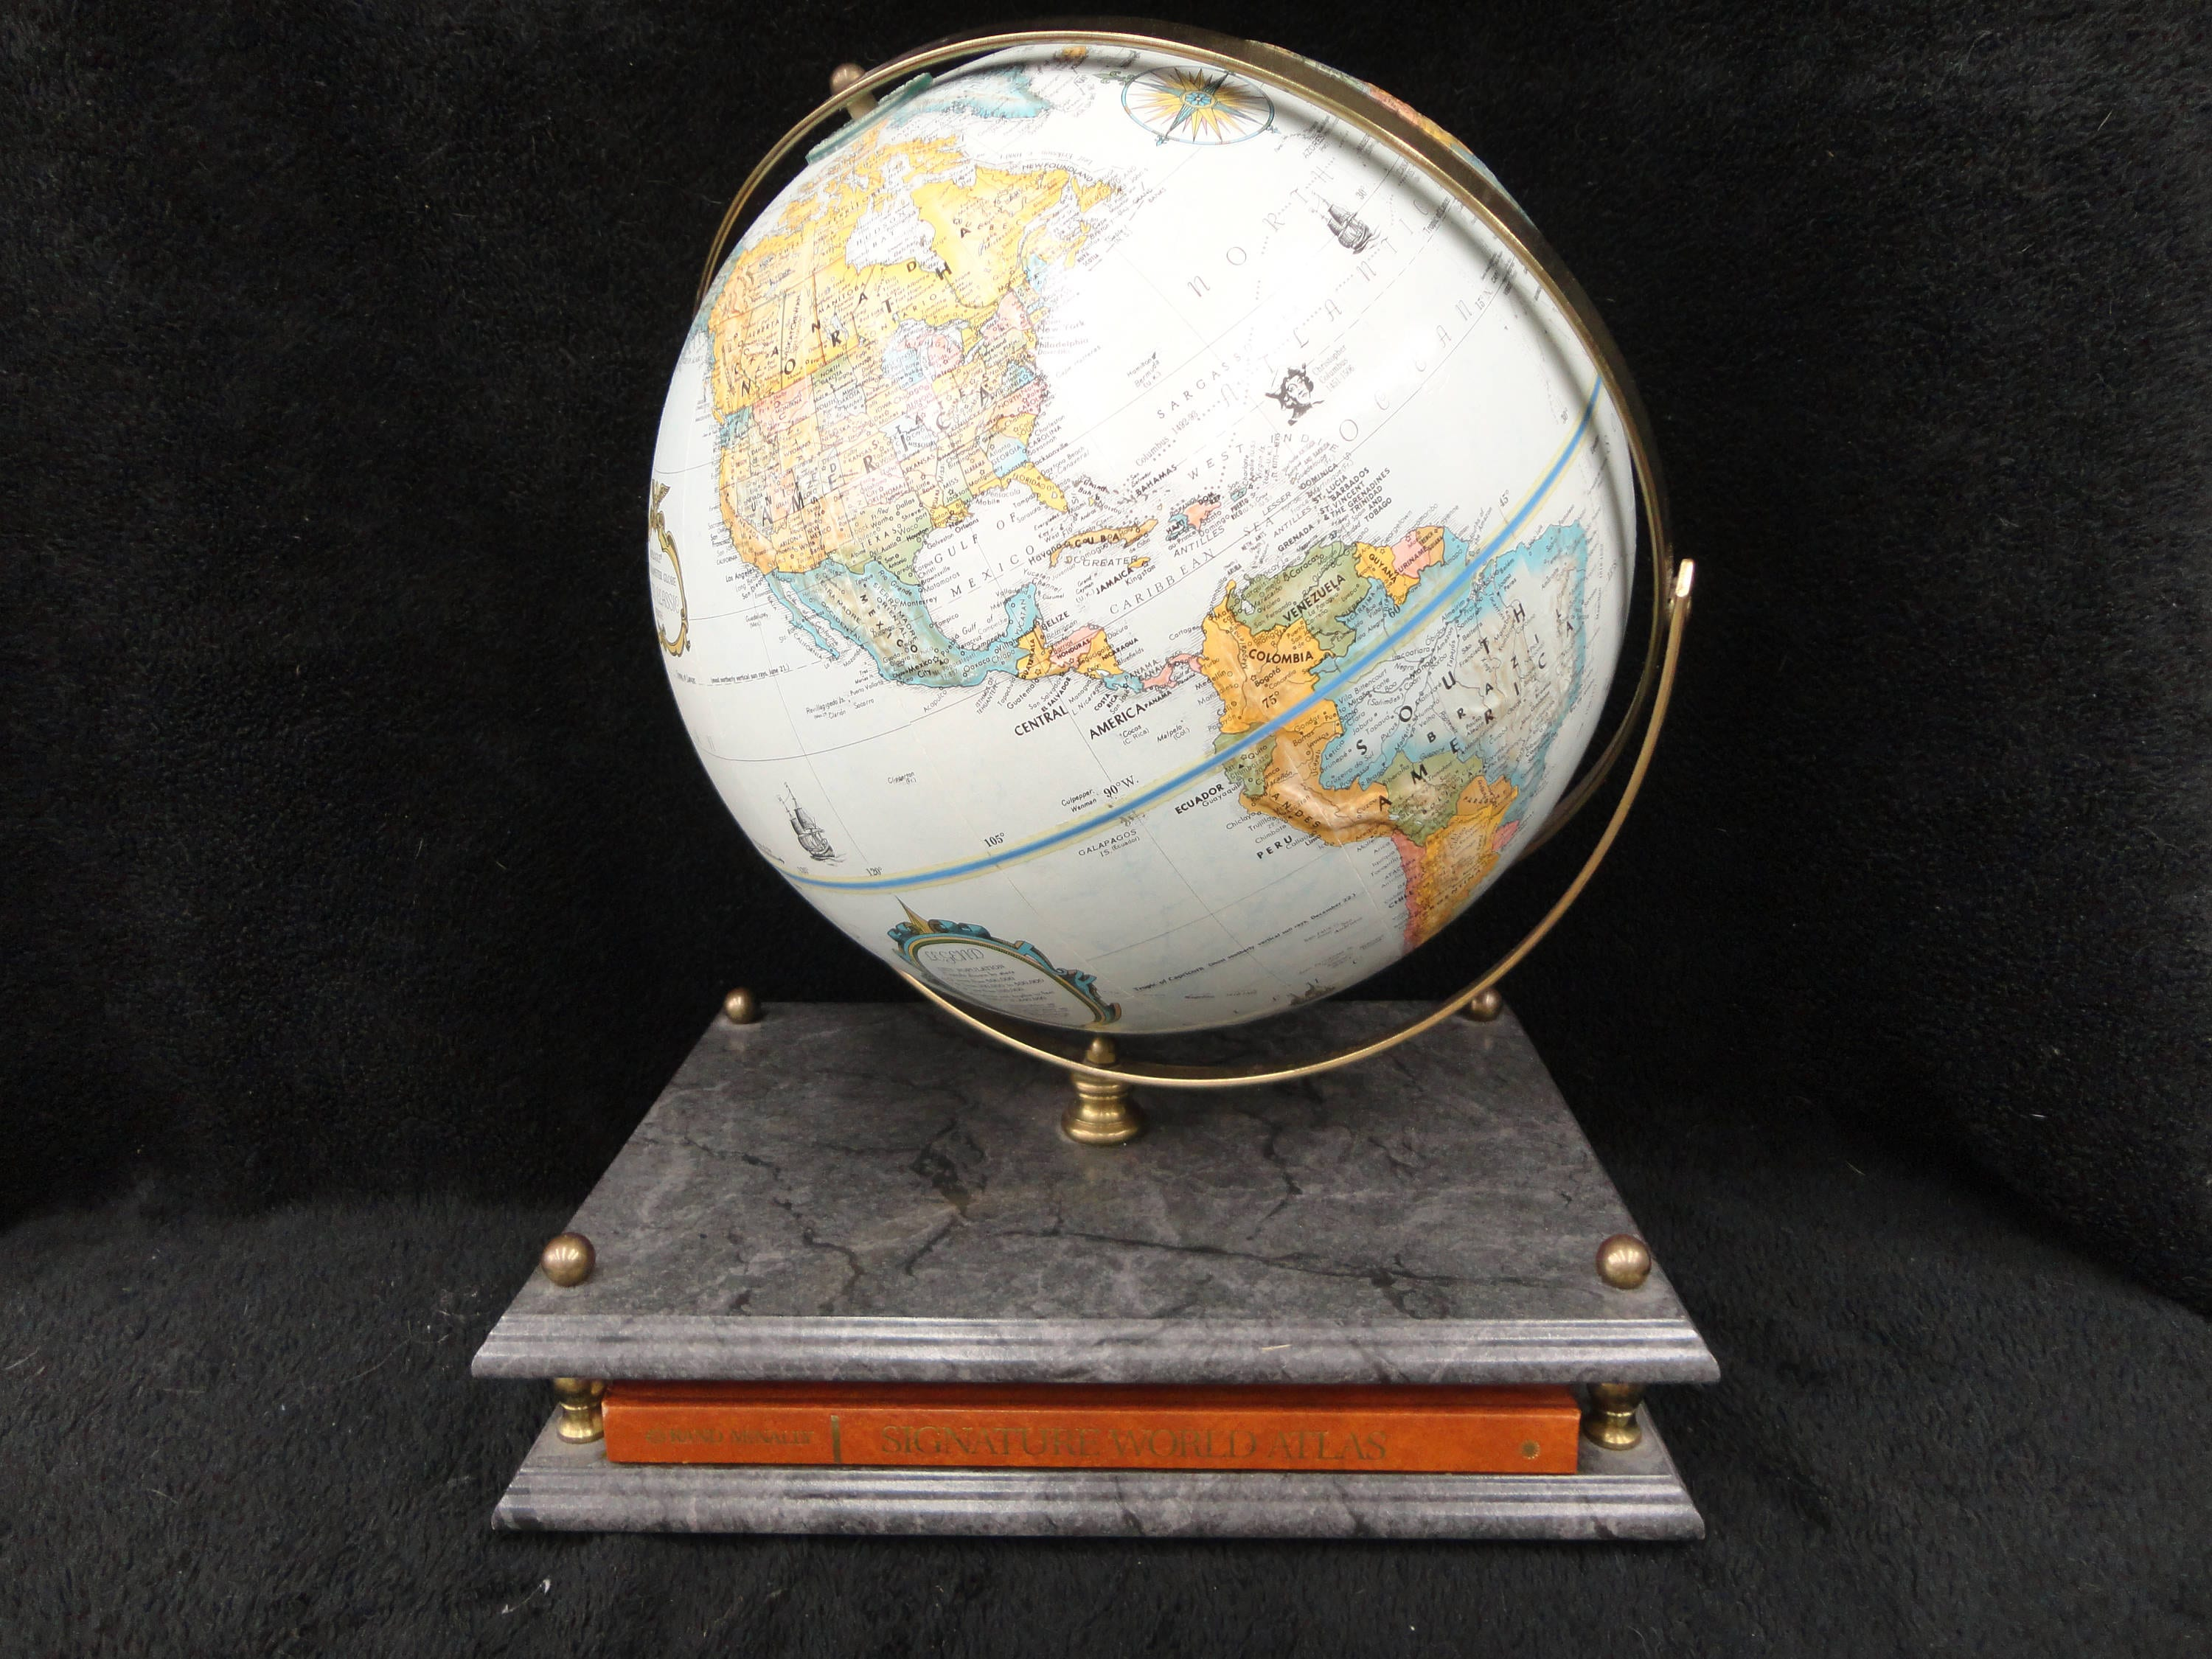 Rand mcnally globe and atlas display w stand signature zoom gumiabroncs Gallery